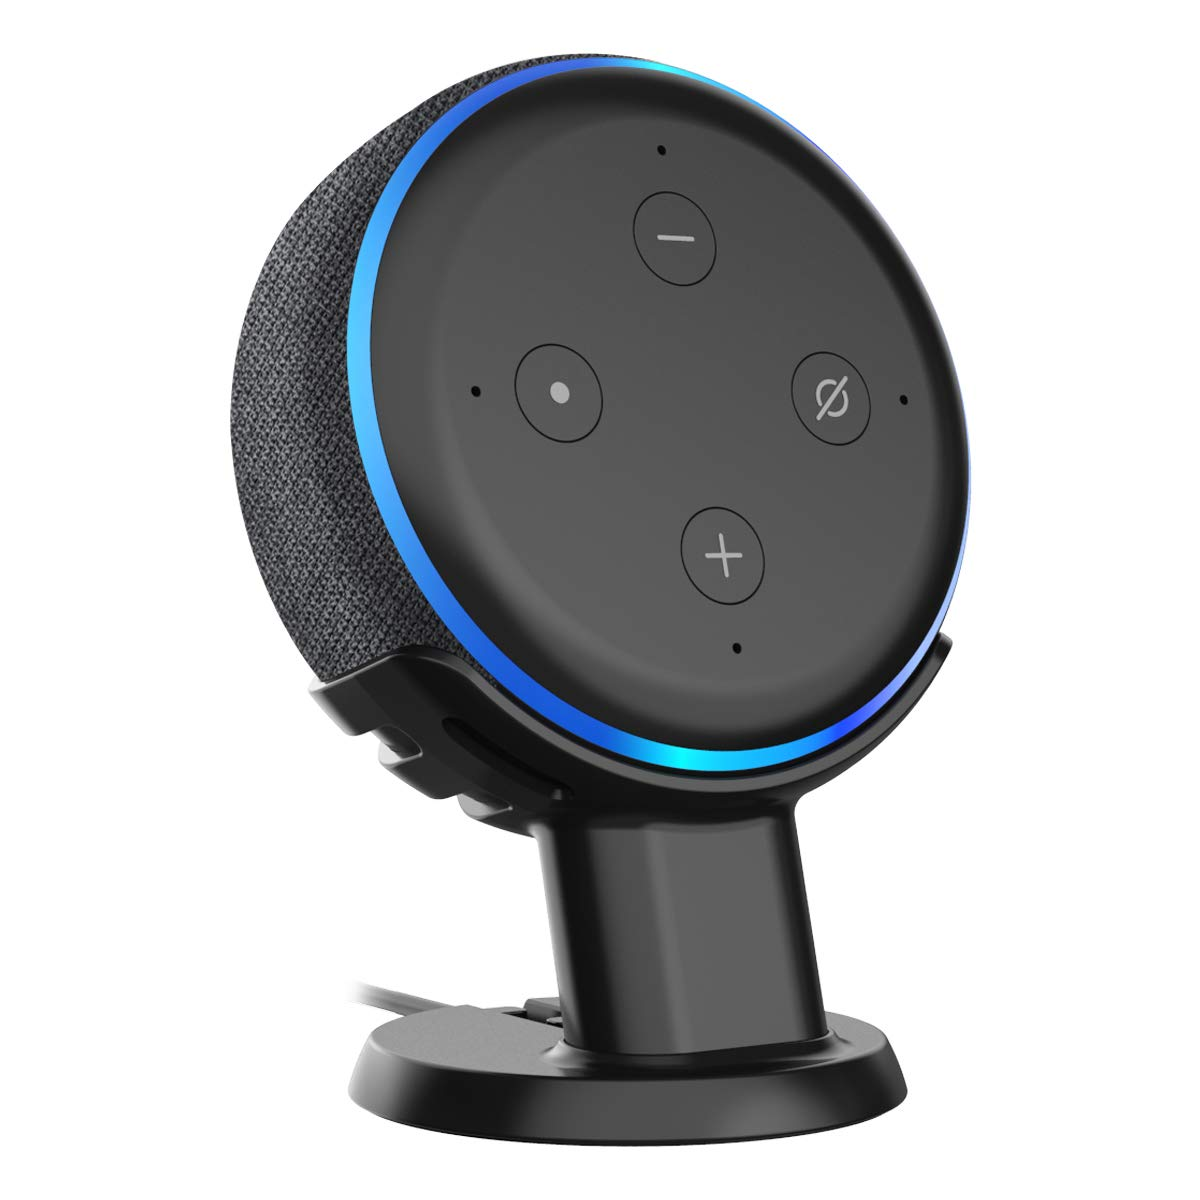 Amazom Echo dot Table Pedestal Mount Holder Stand for Echo dot 3rd Gen, A Cleaner Tidier Appearance Solution Desk Mount Stand and Improves Sound Visibility and Appearance for Echo dot 3rd Gen-Black by Cozycase